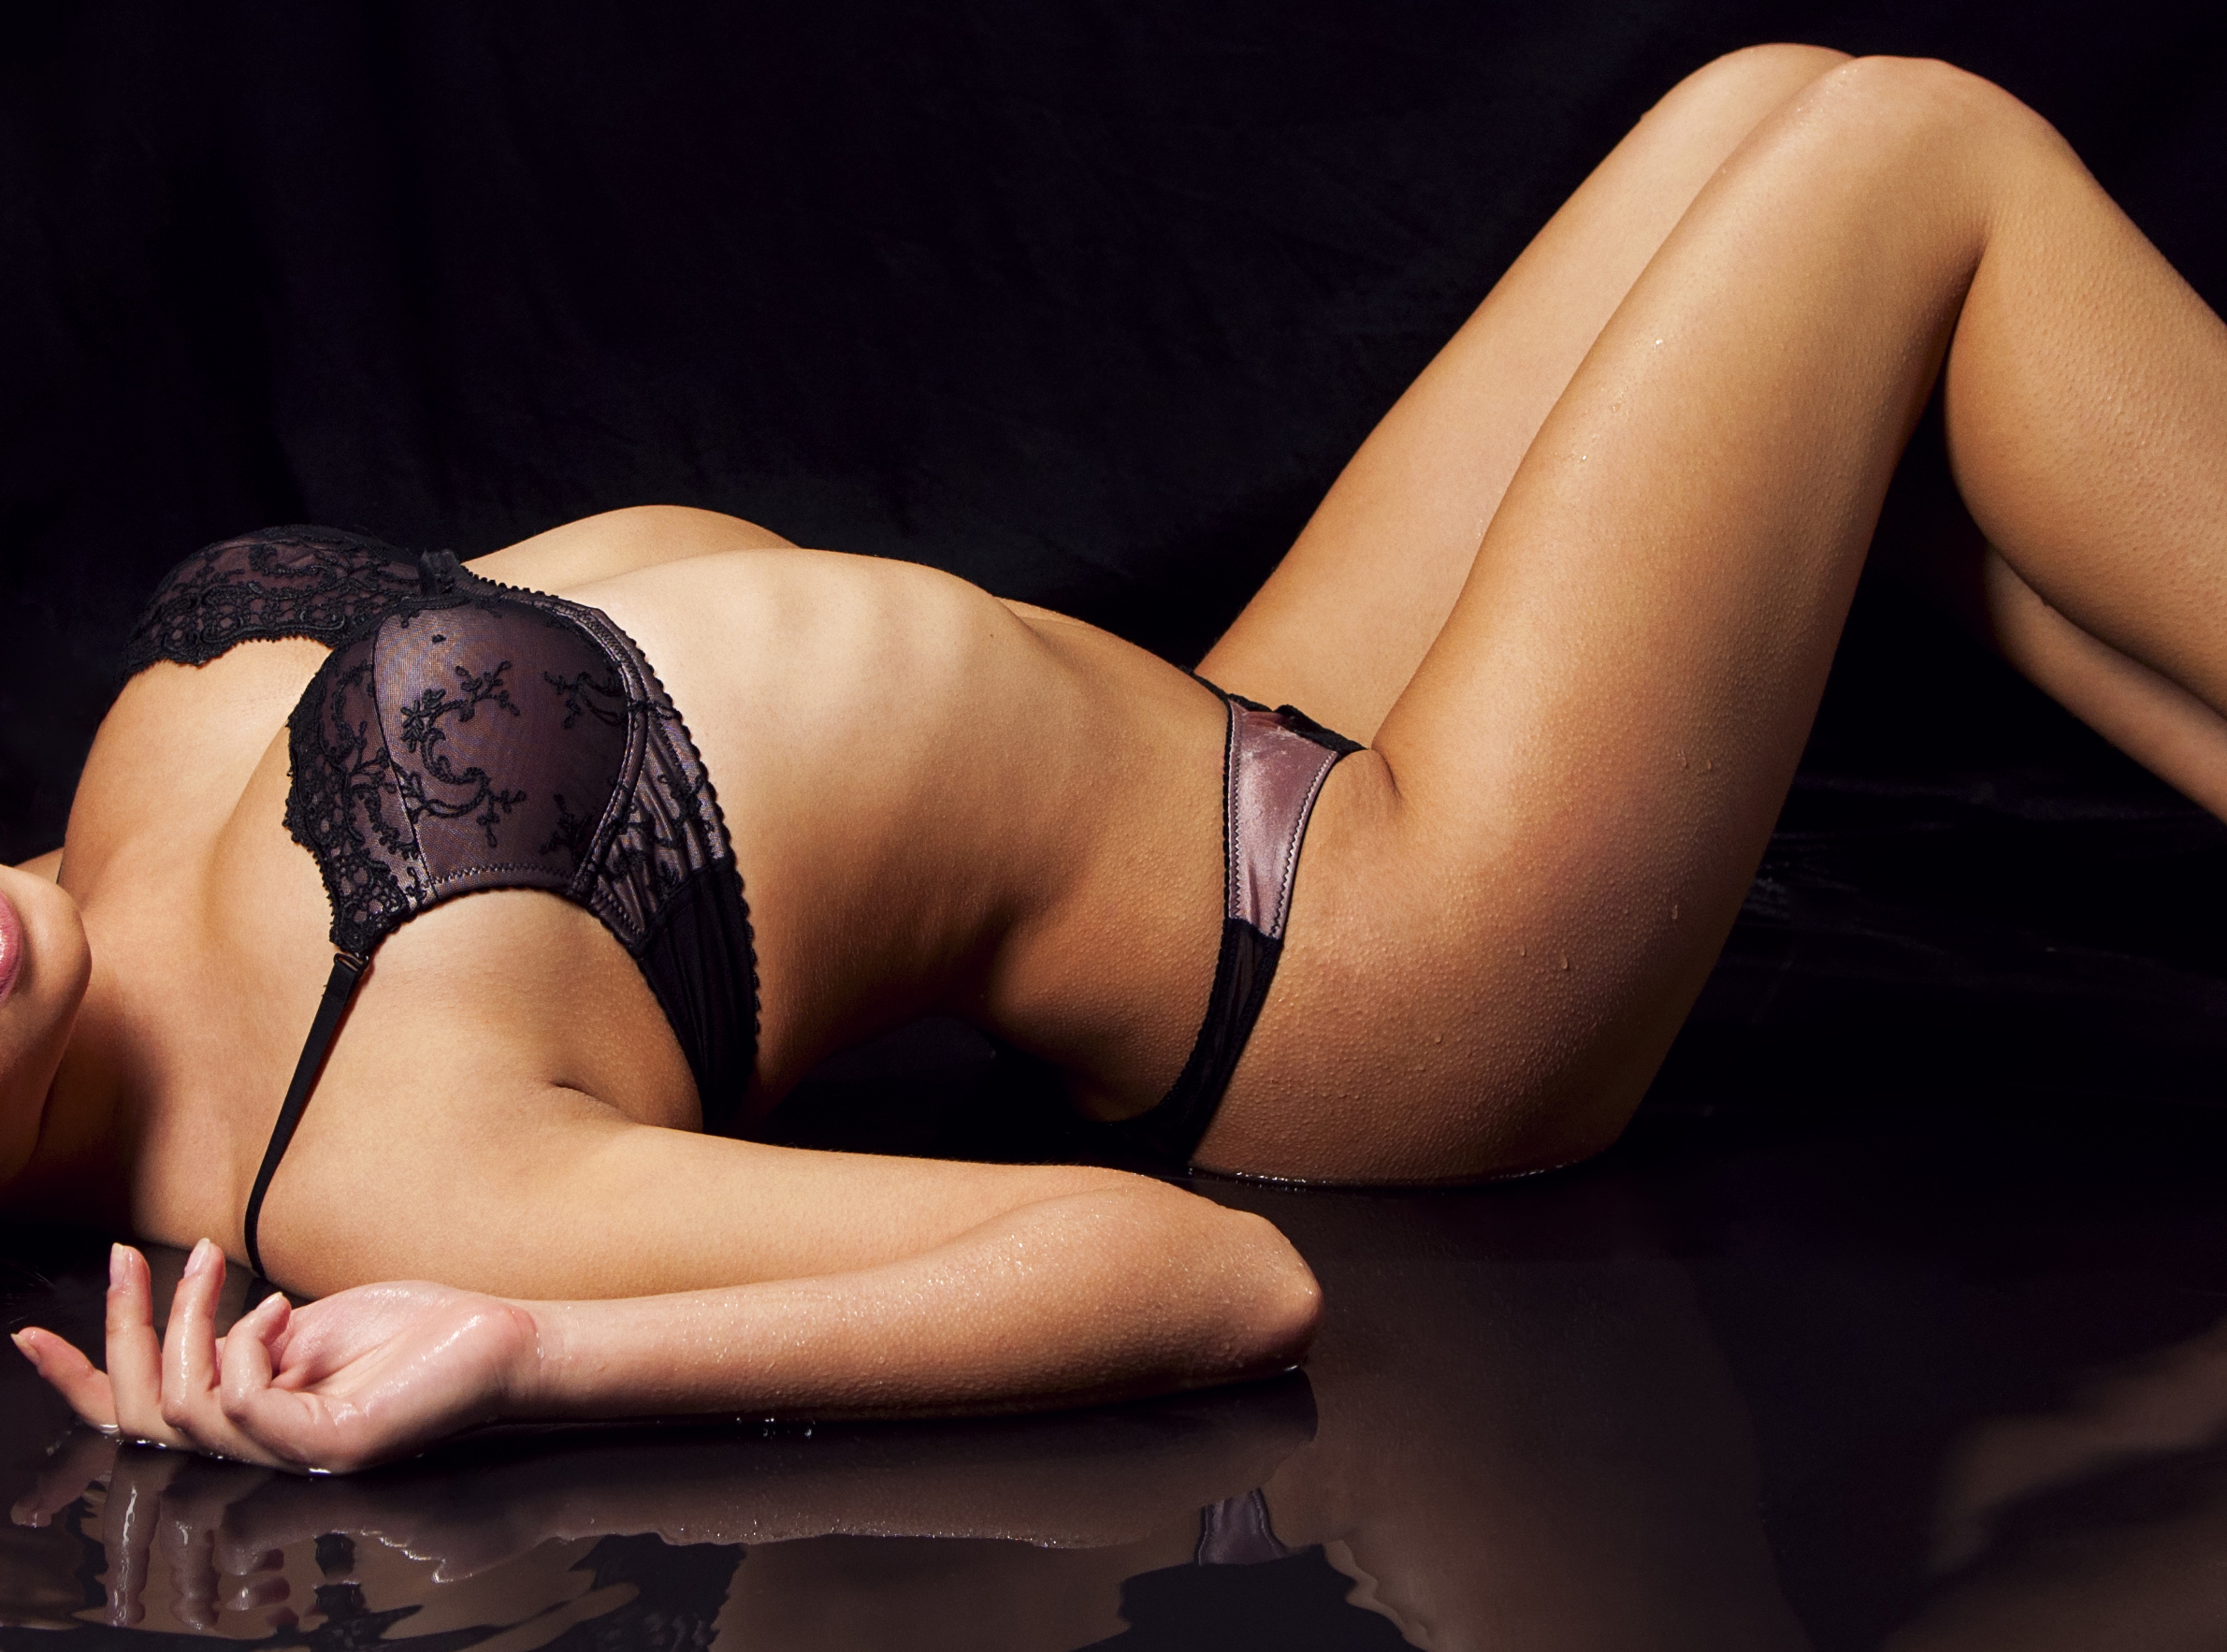 eeotic massage brothels melbourne